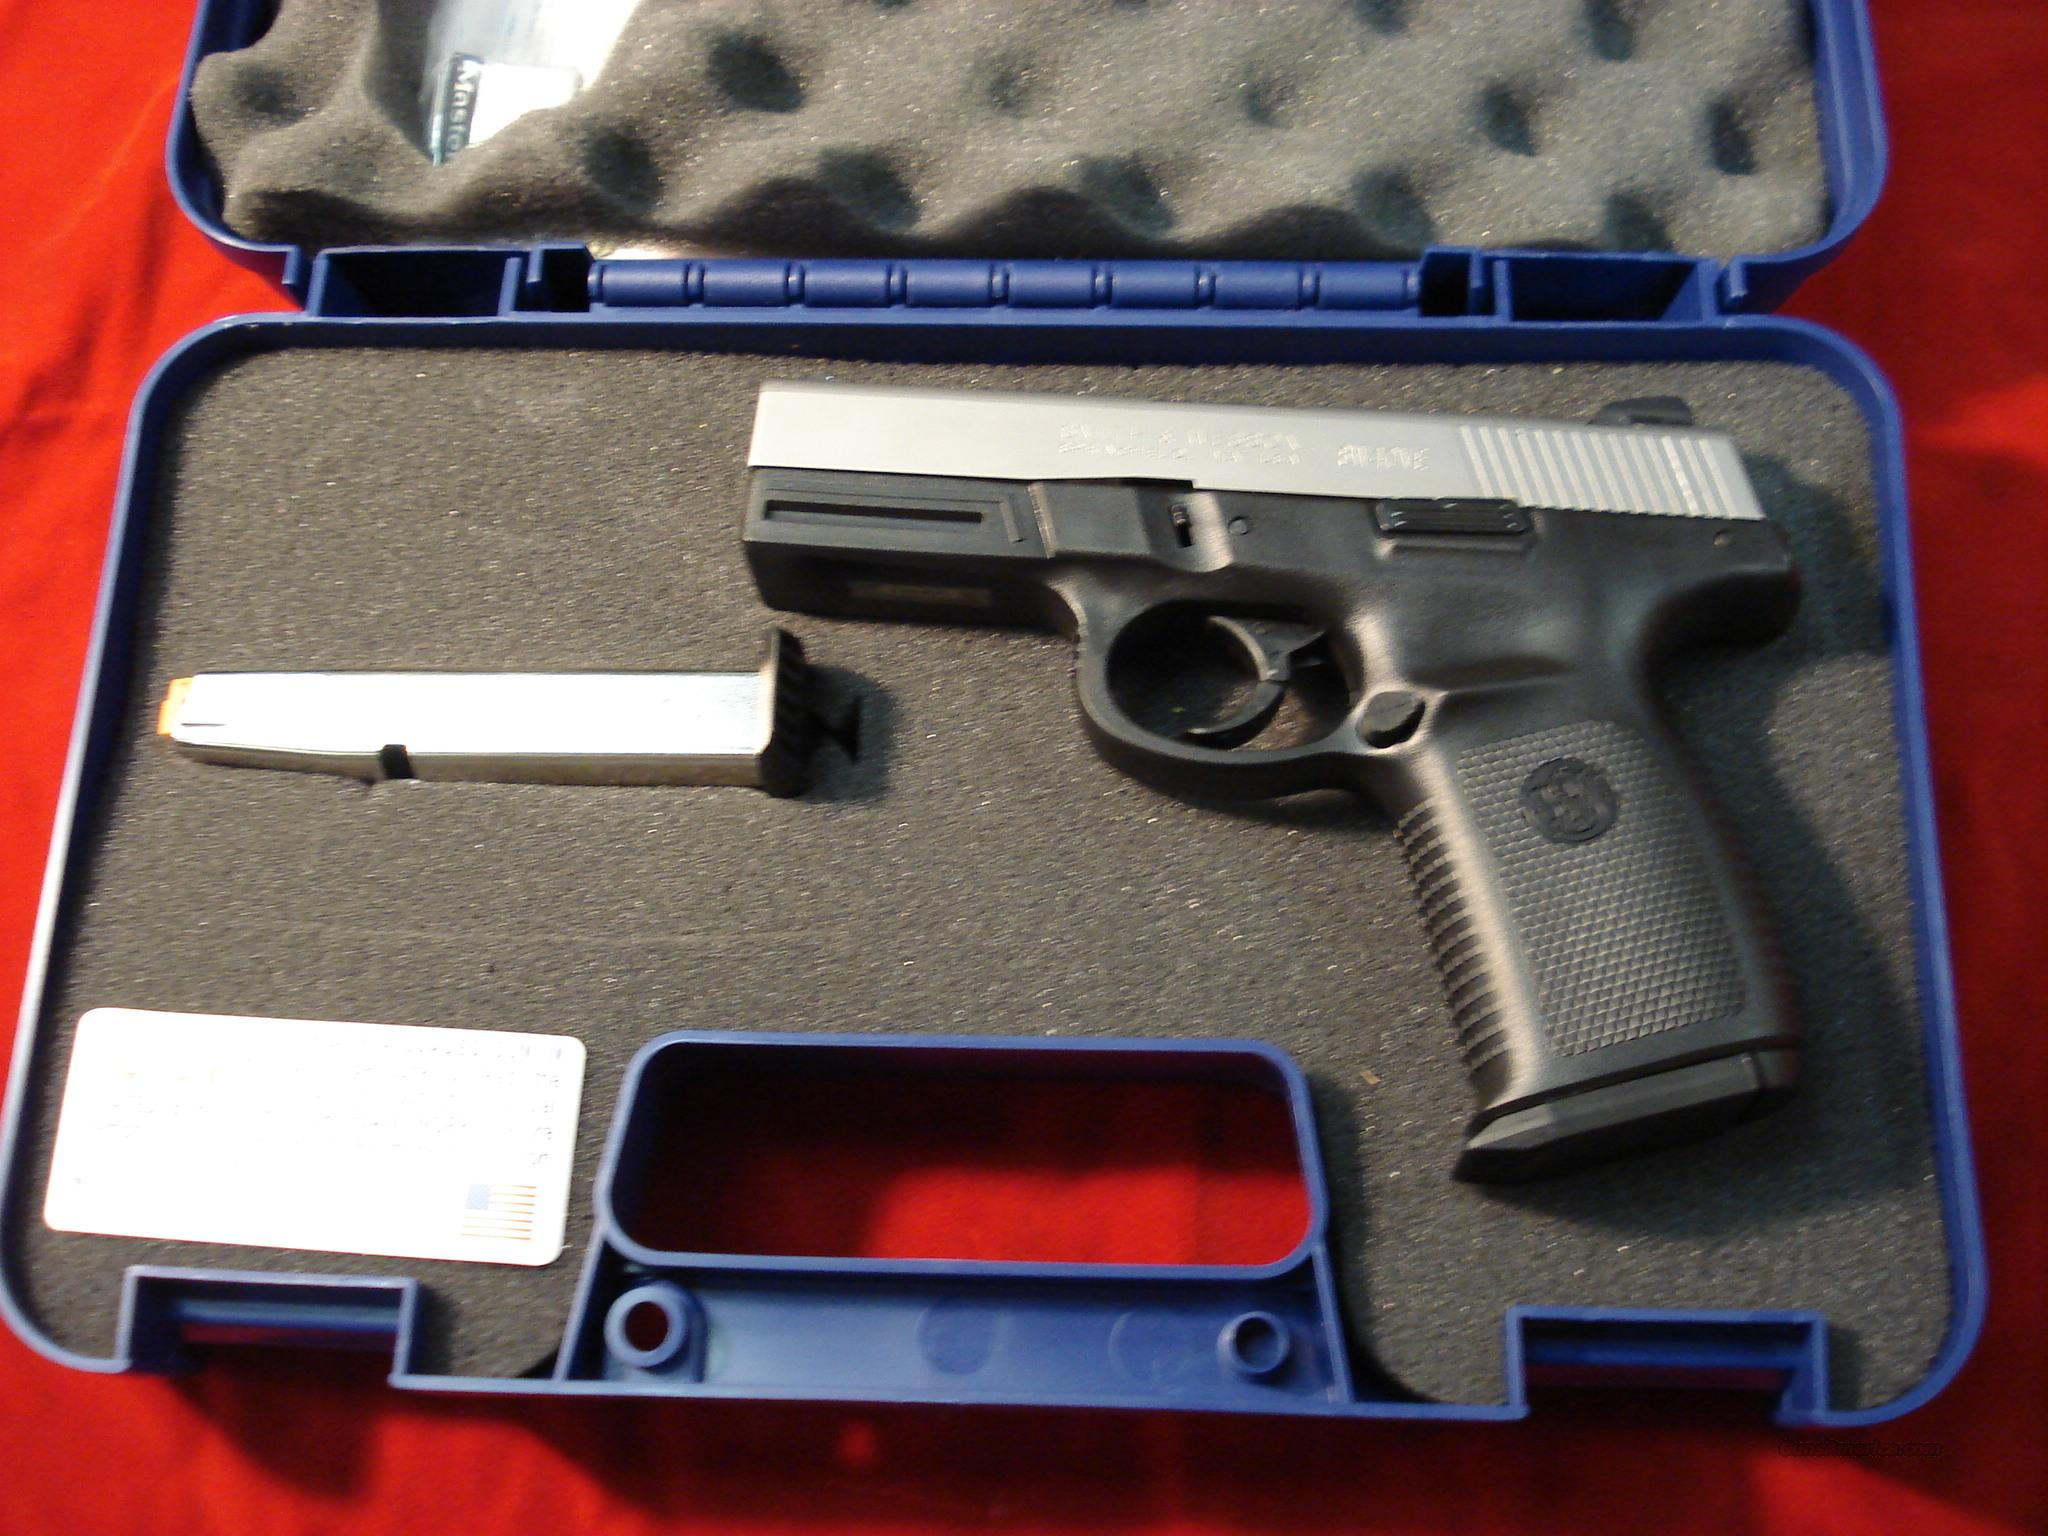 SMITH AND WESSON SIGMA STAINLESS 40 S&W   Guns > Pistols > Smith & Wesson Pistols - Autos > Polymer Frame